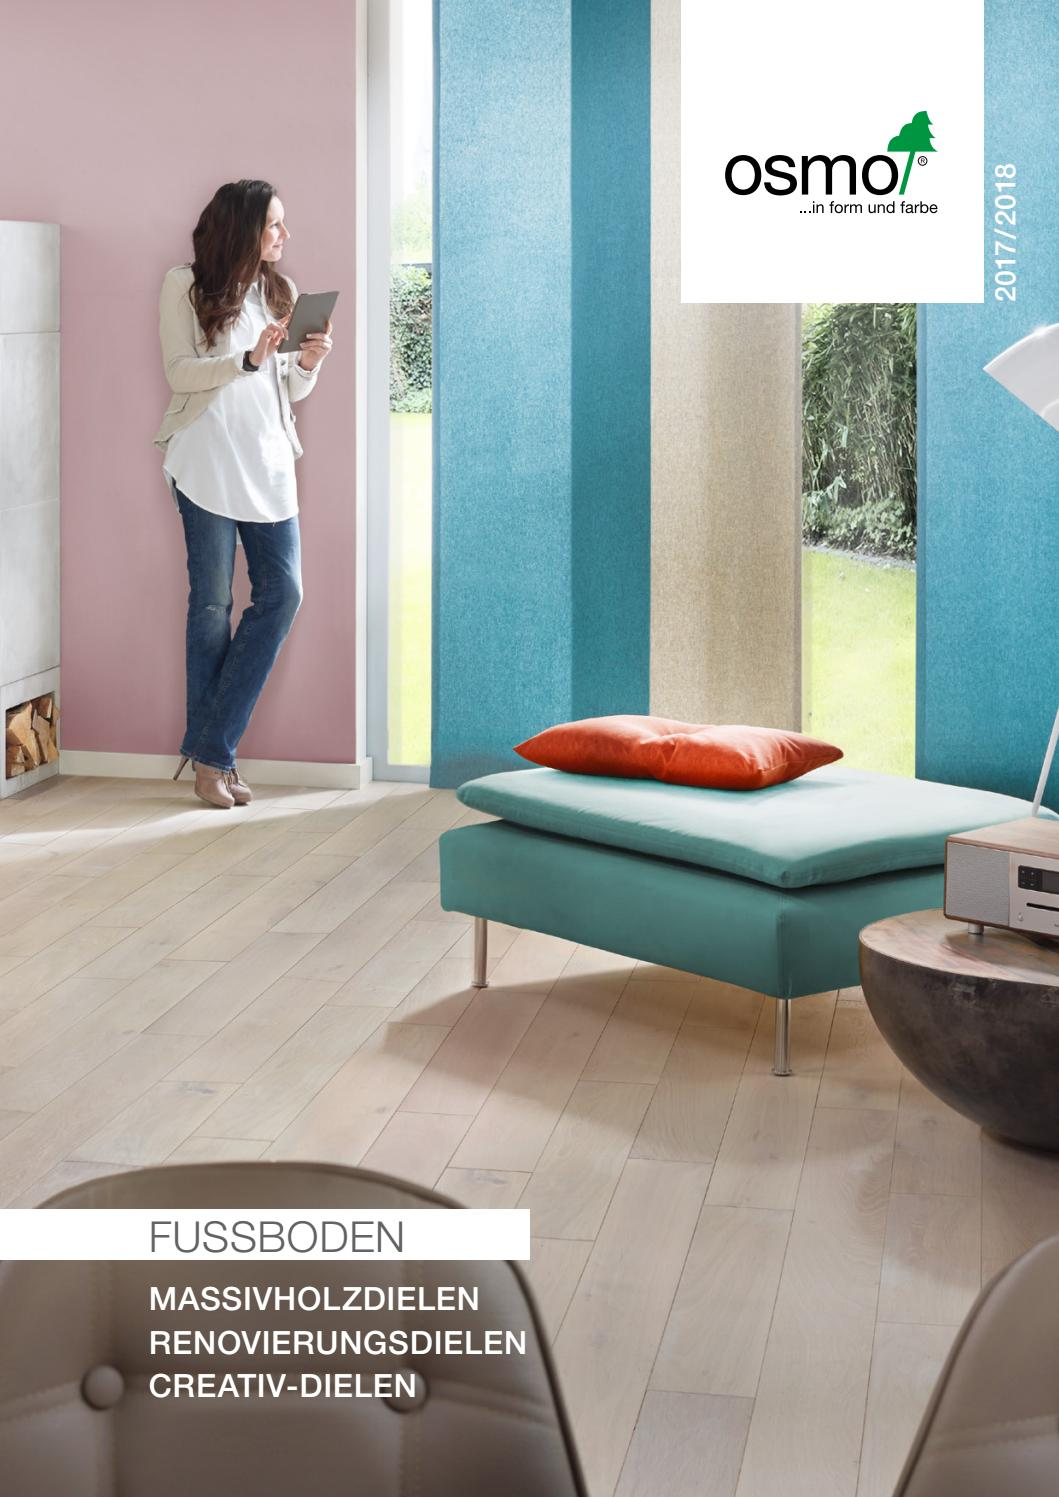 osmo fussboden by kaiser design issuu. Black Bedroom Furniture Sets. Home Design Ideas